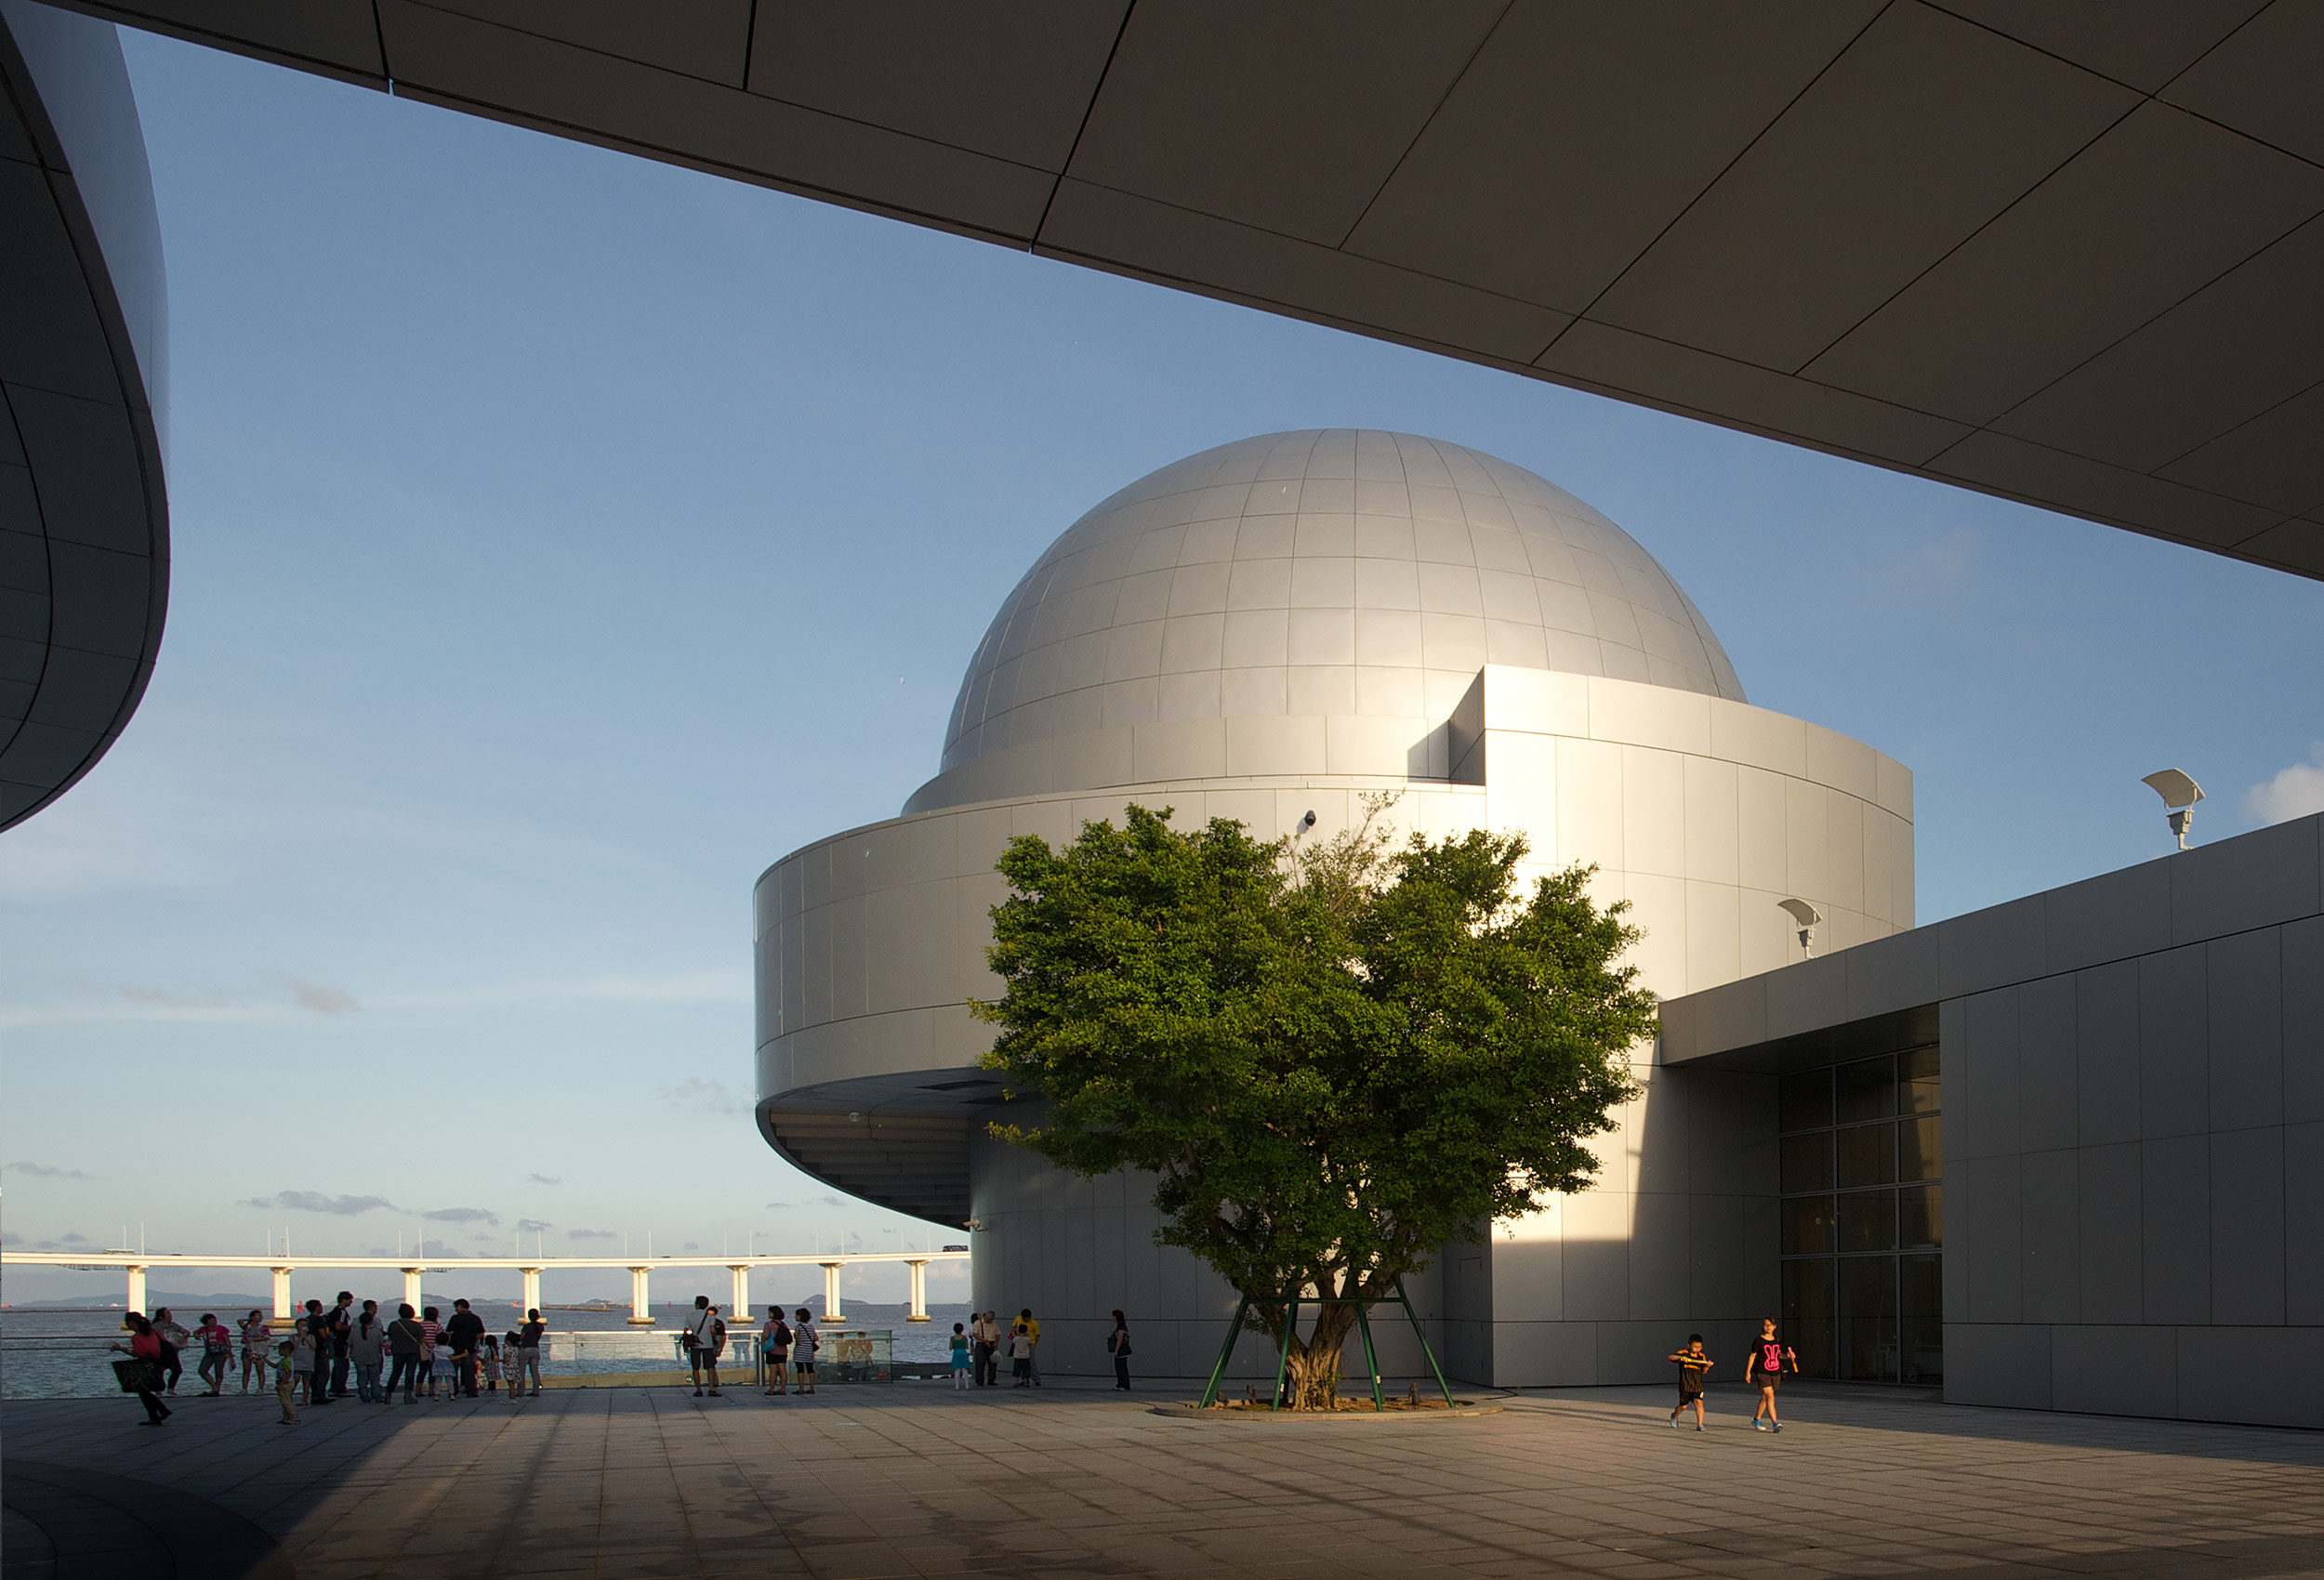 Exterior of Macau Science Centre by architectural photographer Kristopher Grunert